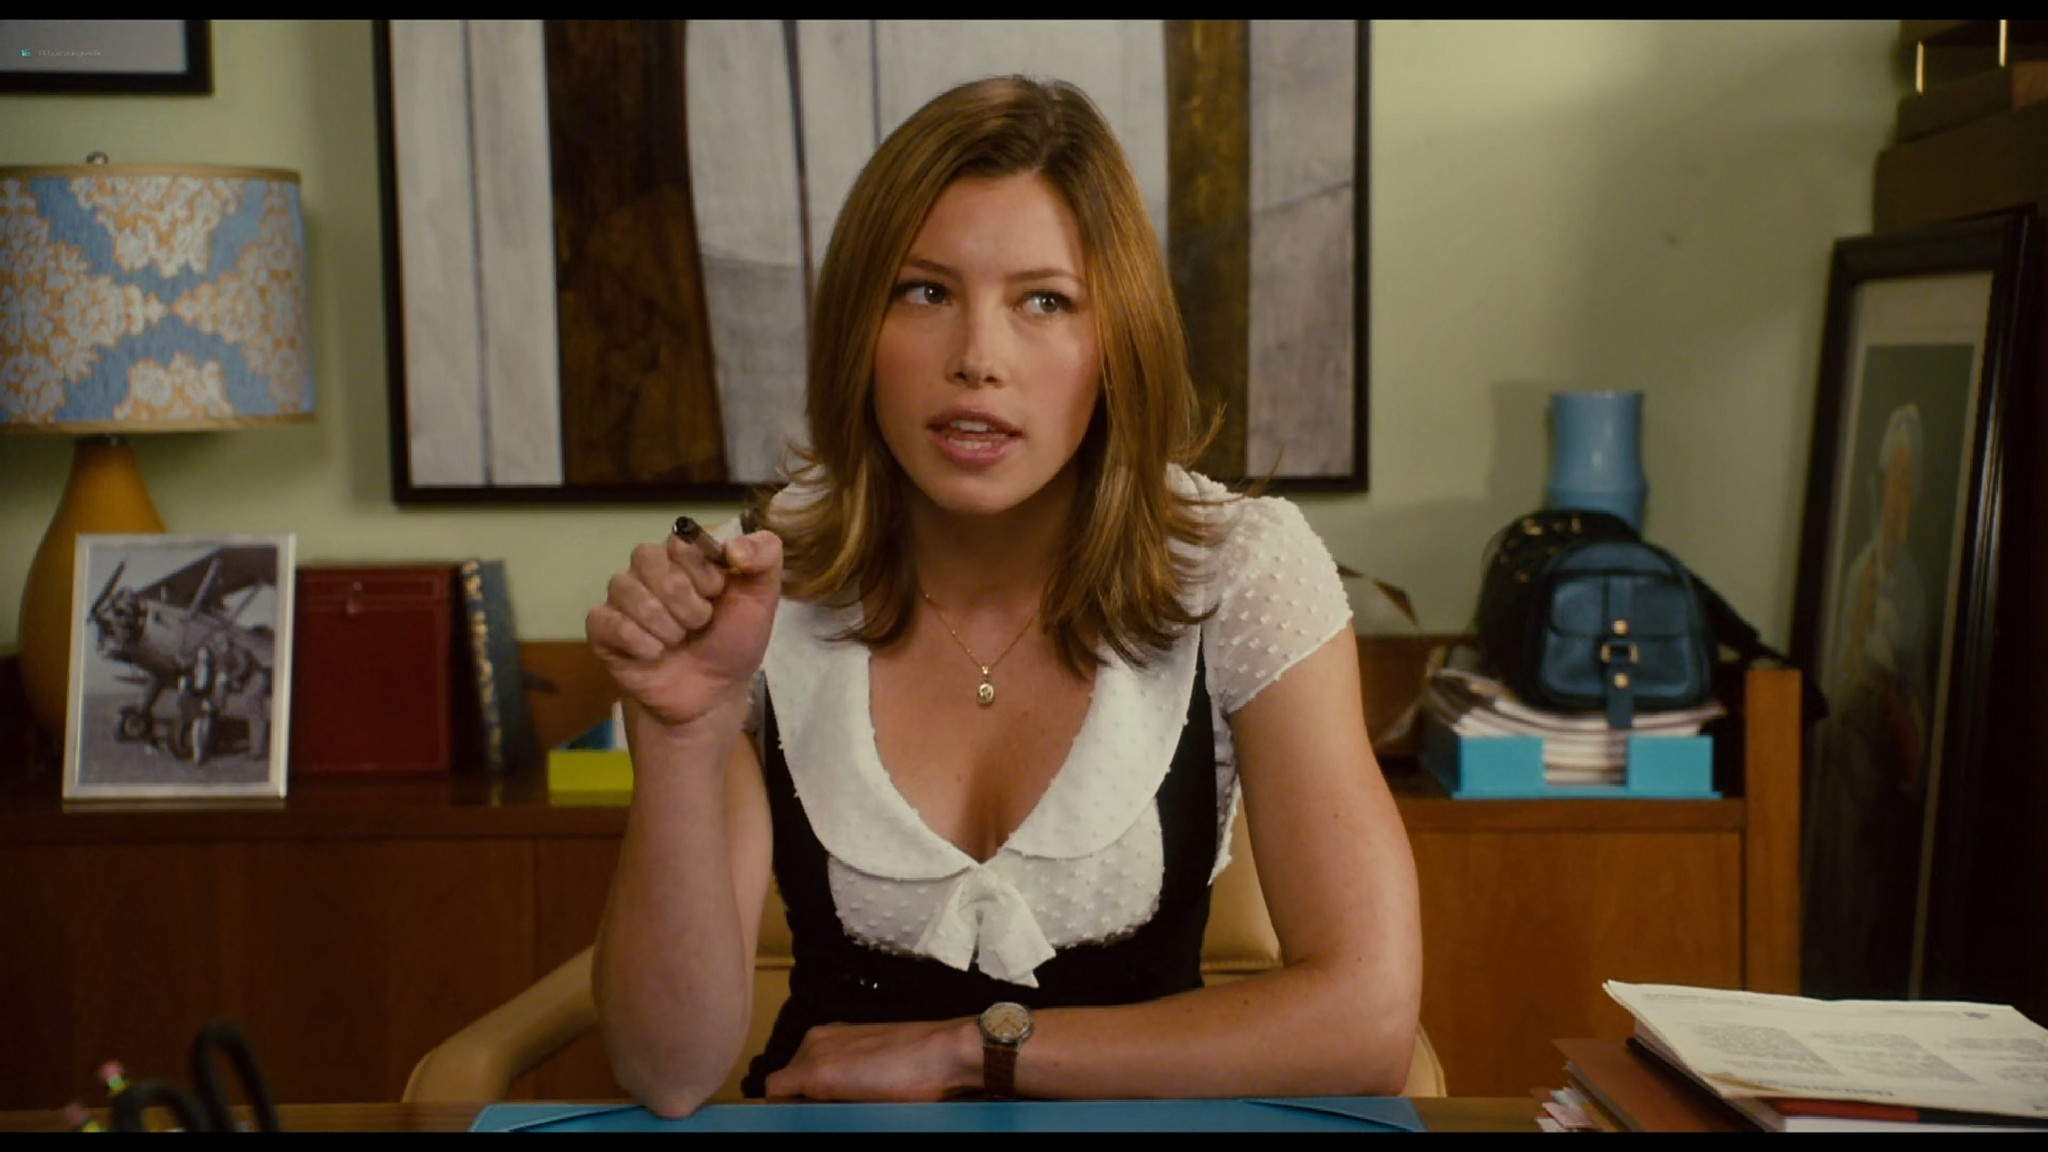 Jessica Biel hot sexy and Adam Sandler groping her boobs others sexy too - I Now Pronounce You Chuck & Larry (2007) HD 1080p BluRay (20)